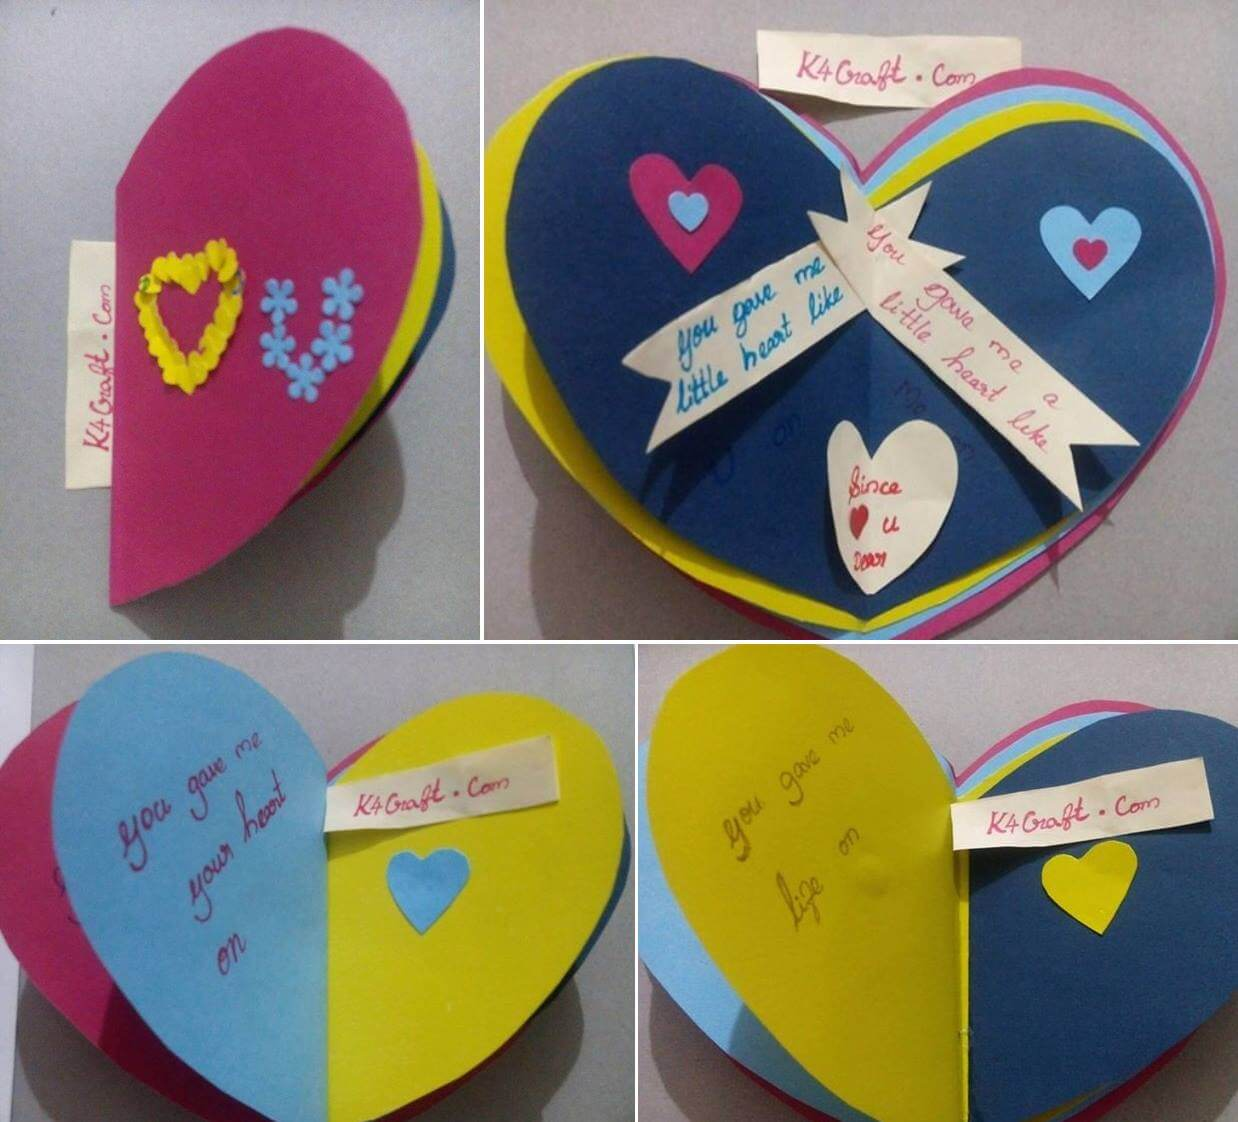 Paper Craft: Valentine's Day I love You Card Valentine's Day Handmade Craft Ideas